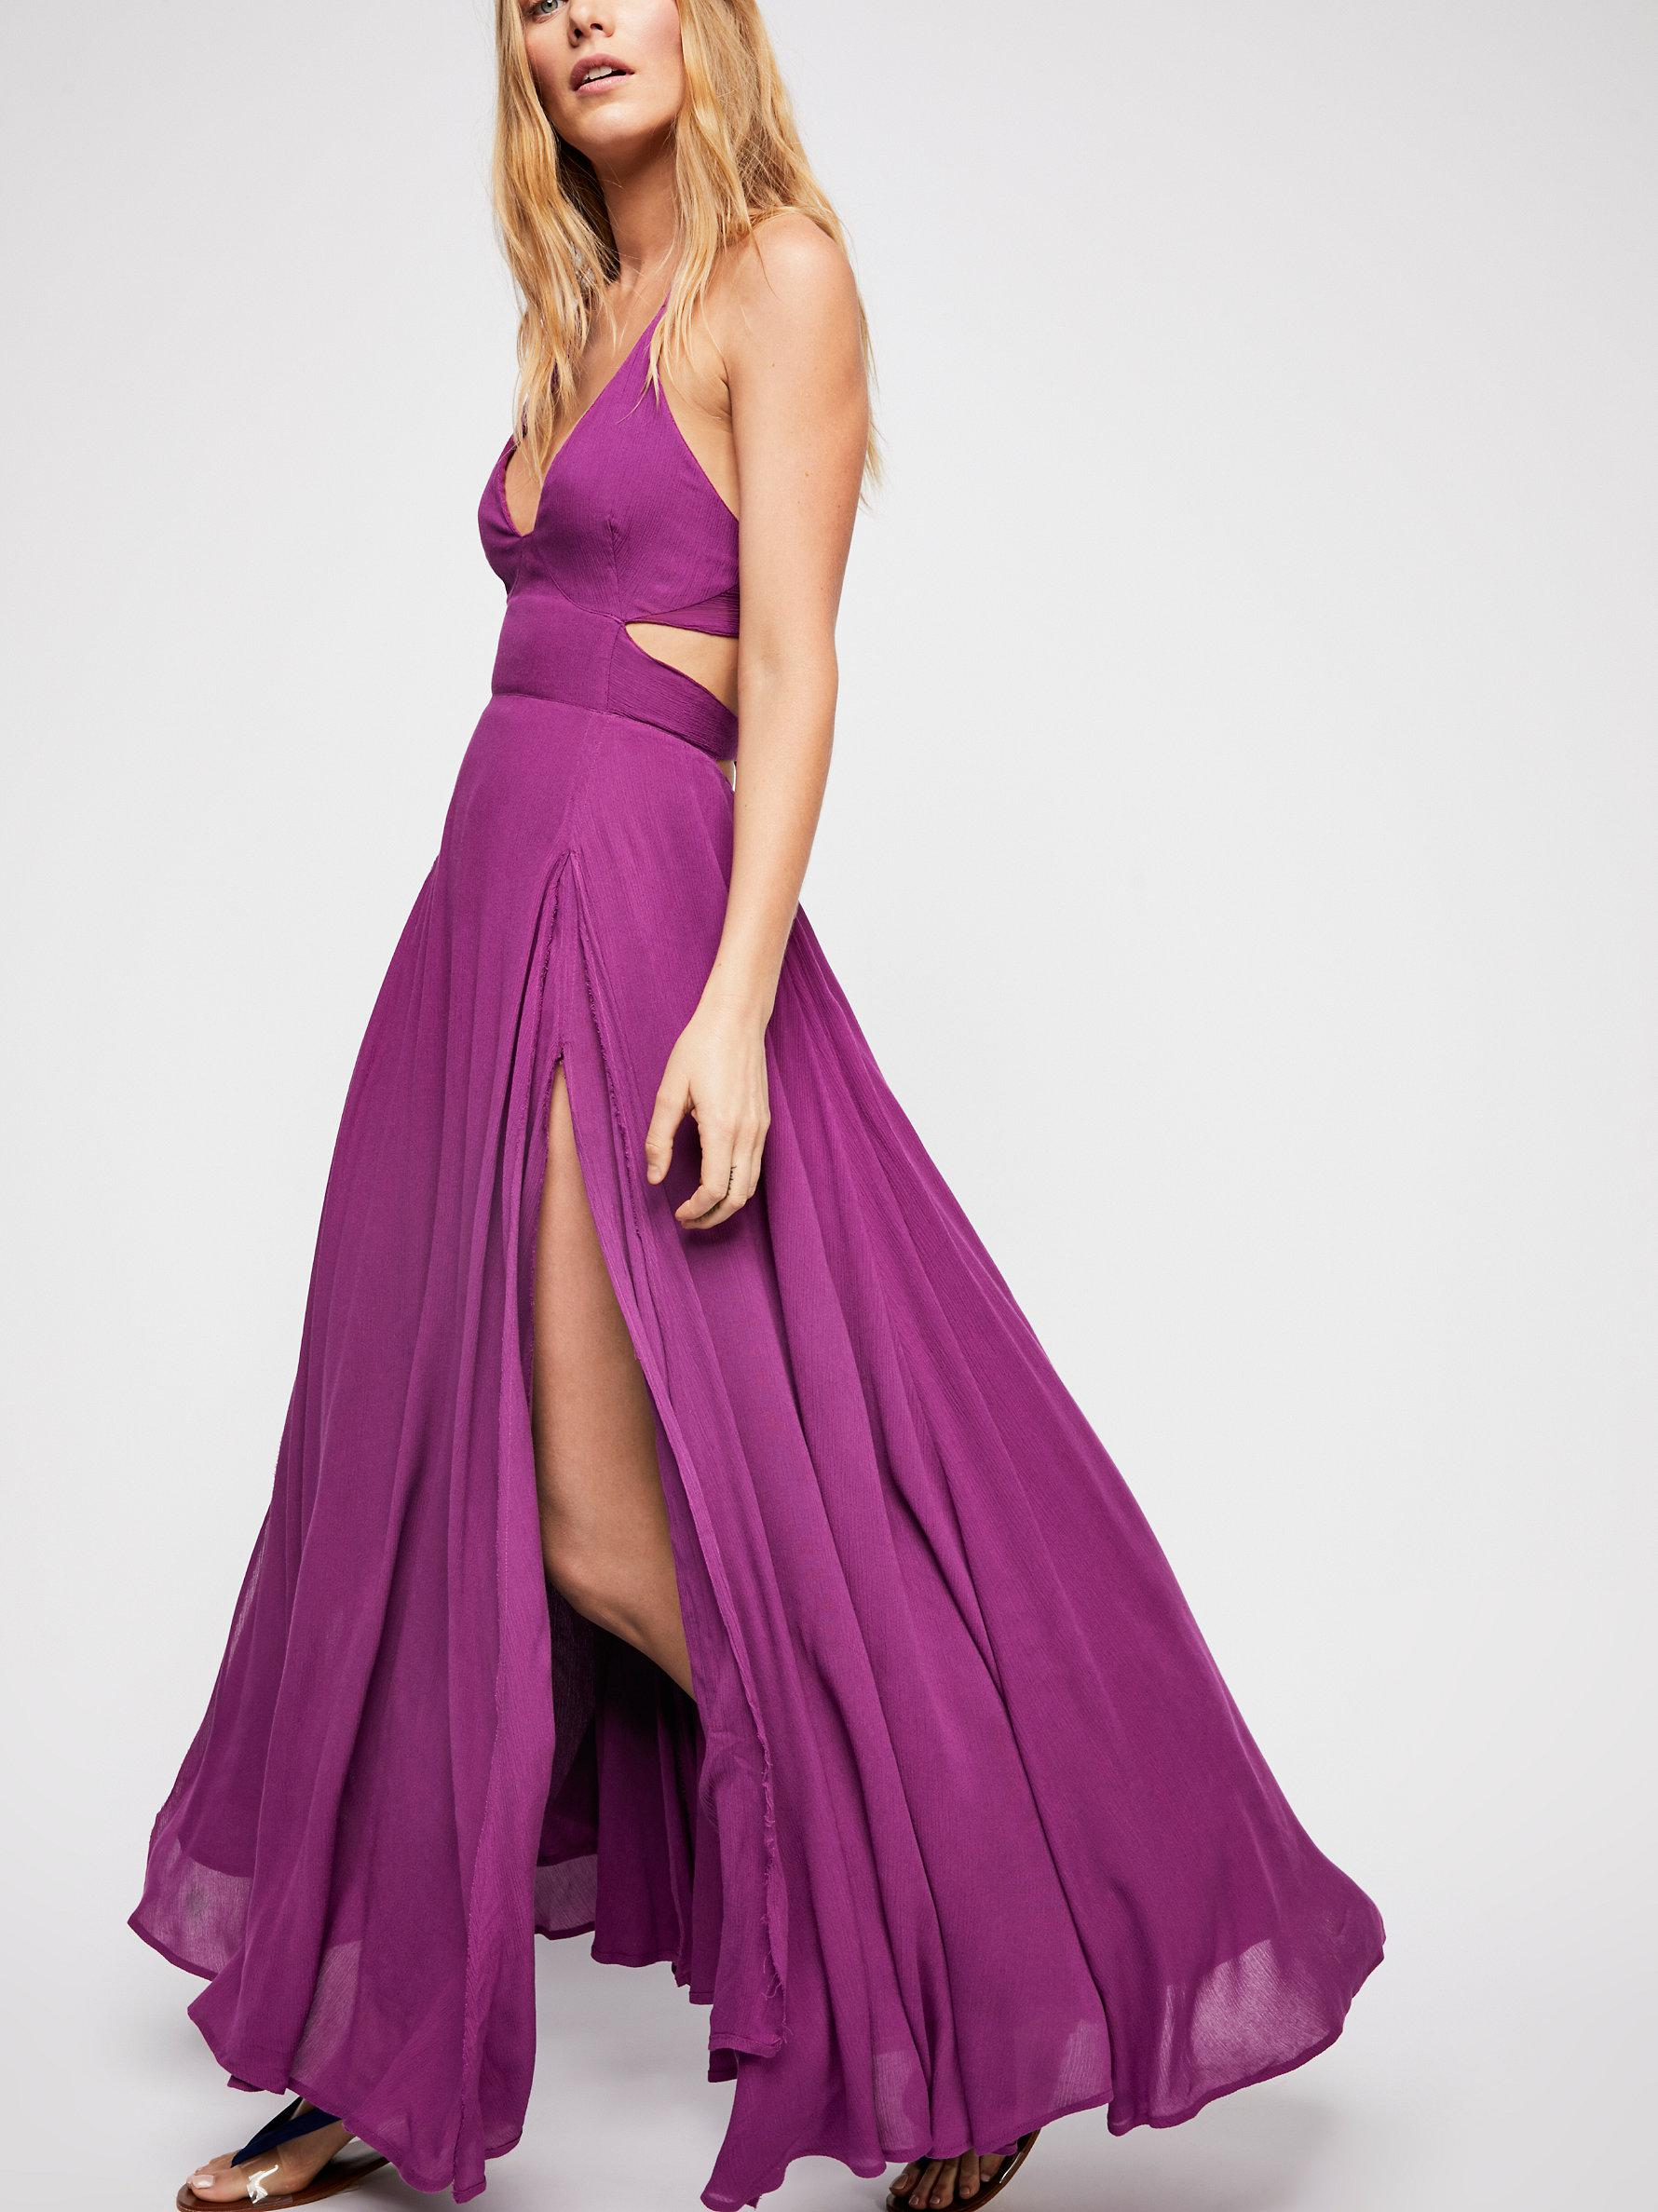 09e0f02447a Free People Lille Maxi Dress in Purple - Lyst